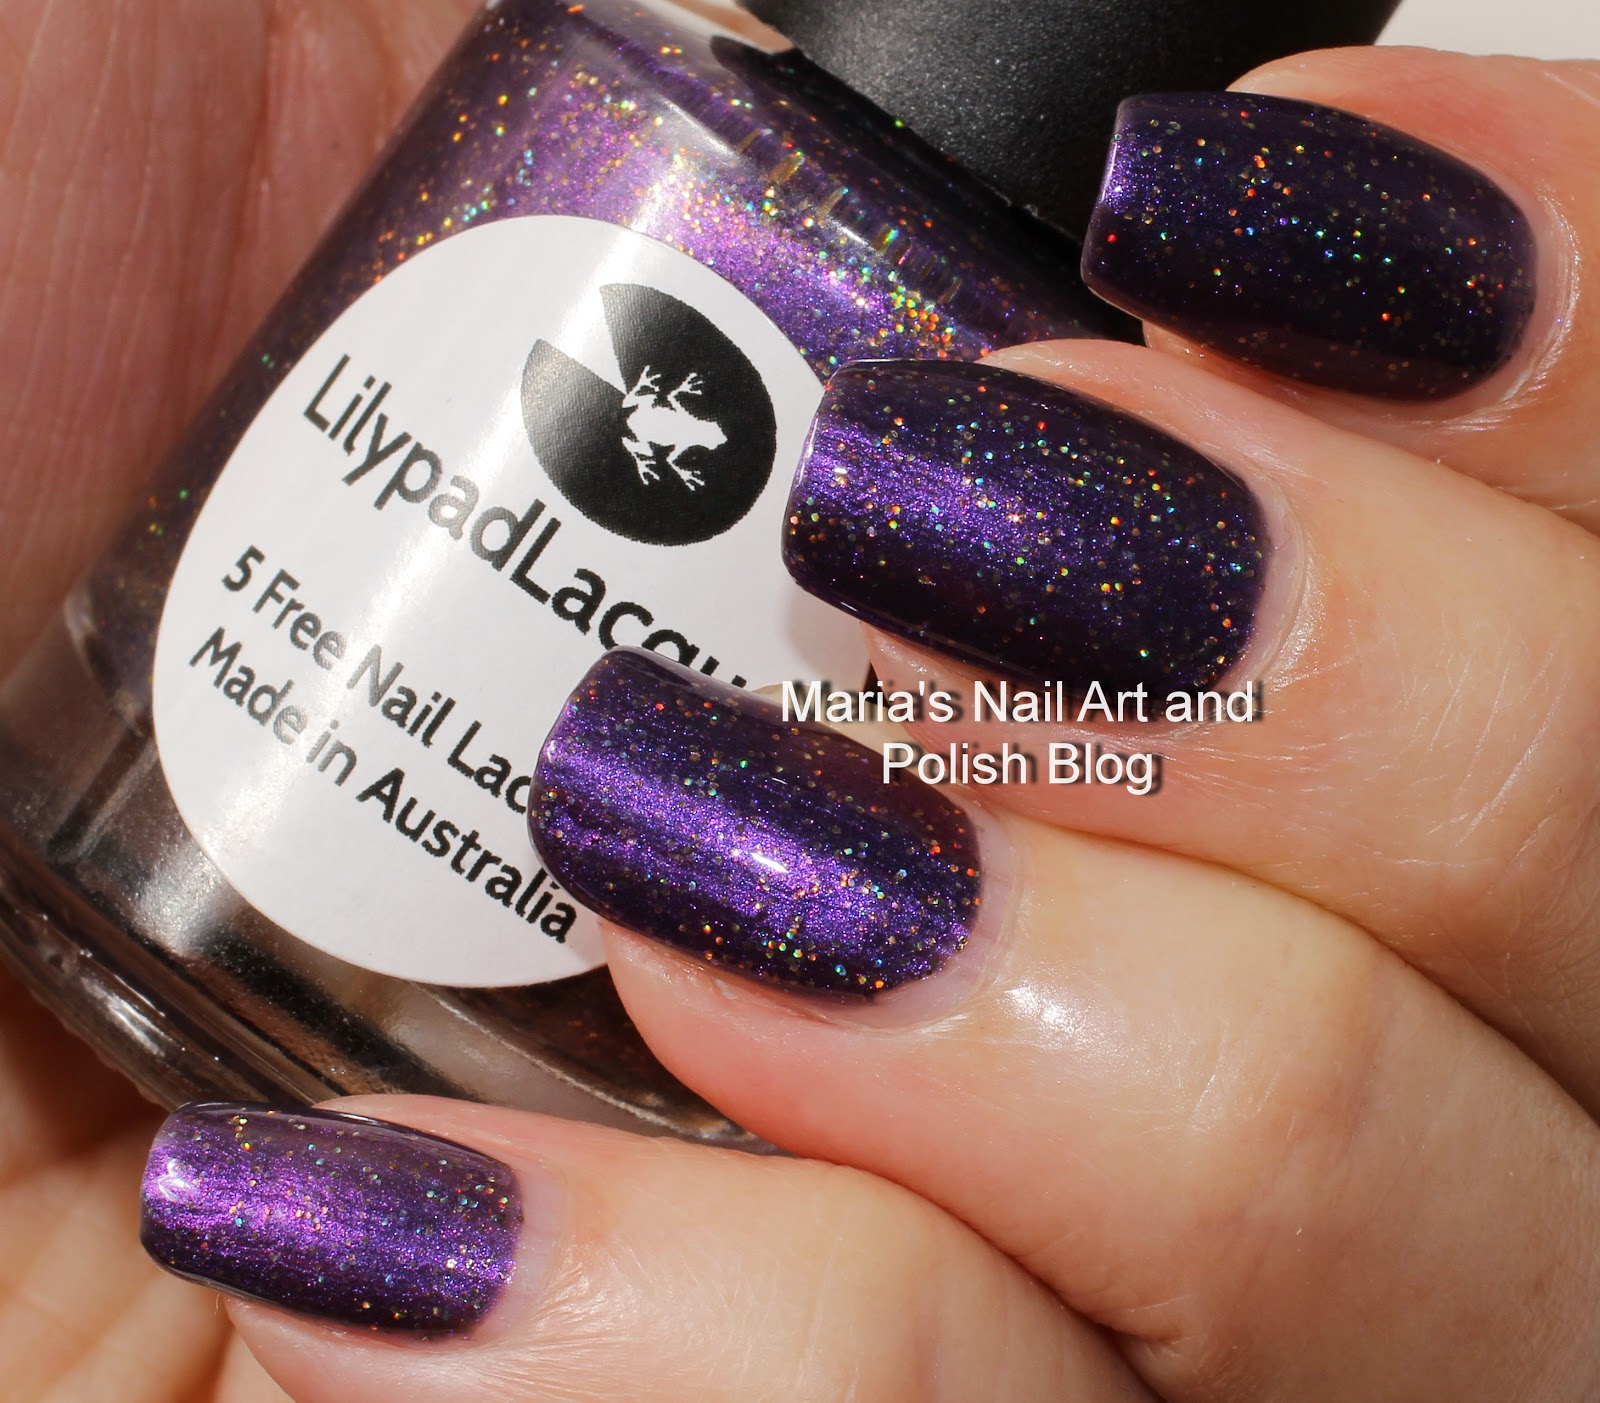 L B K Nail Lacquers Are Unique And Beautiful Giveaway: Marias Nail Art And Polish Blog: Lilypad Lacquer Merlot For Me